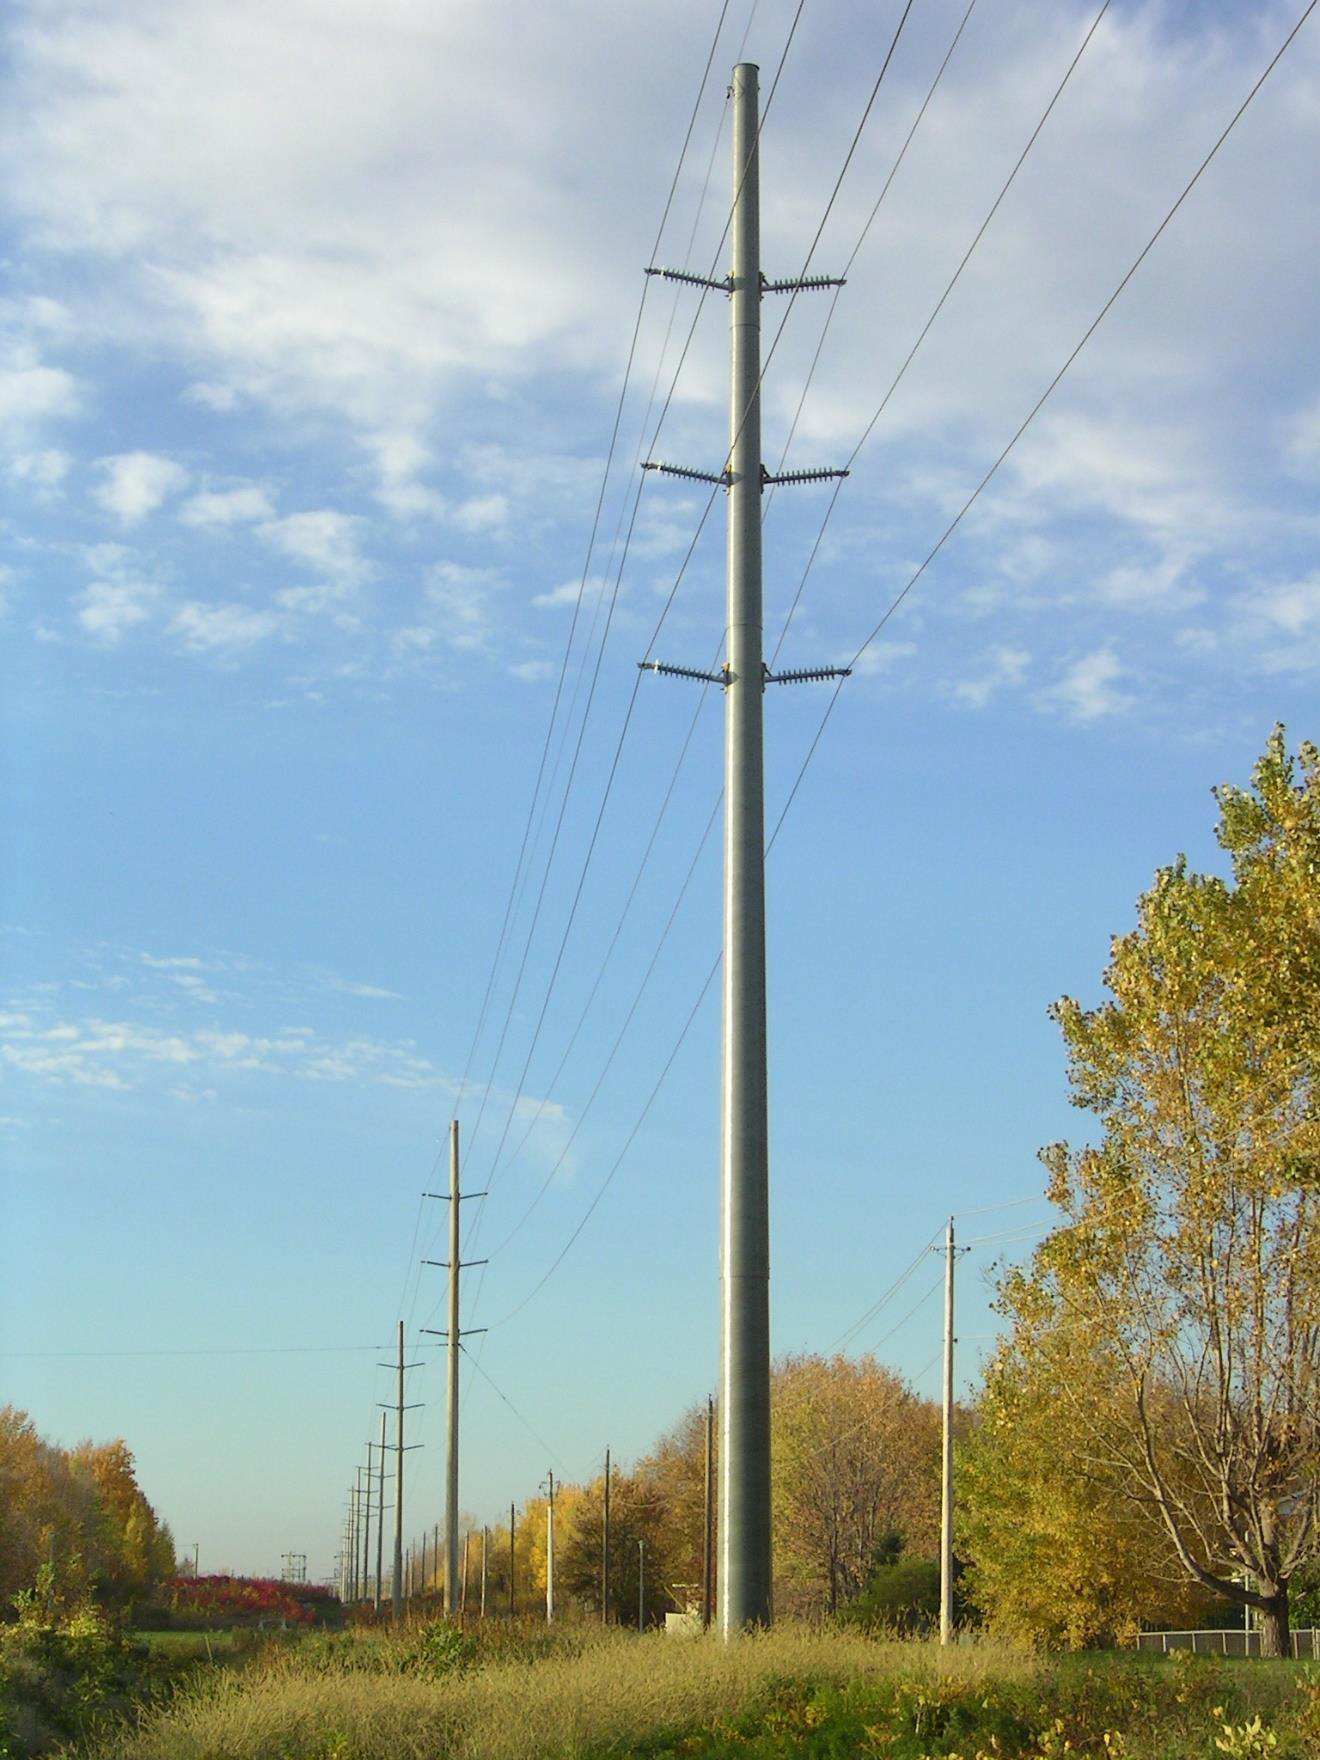 Double circuit 115kV RS pole installed with Cornwall Electric (A FortisOntario Company) in Cornwall, Ontario, Canada